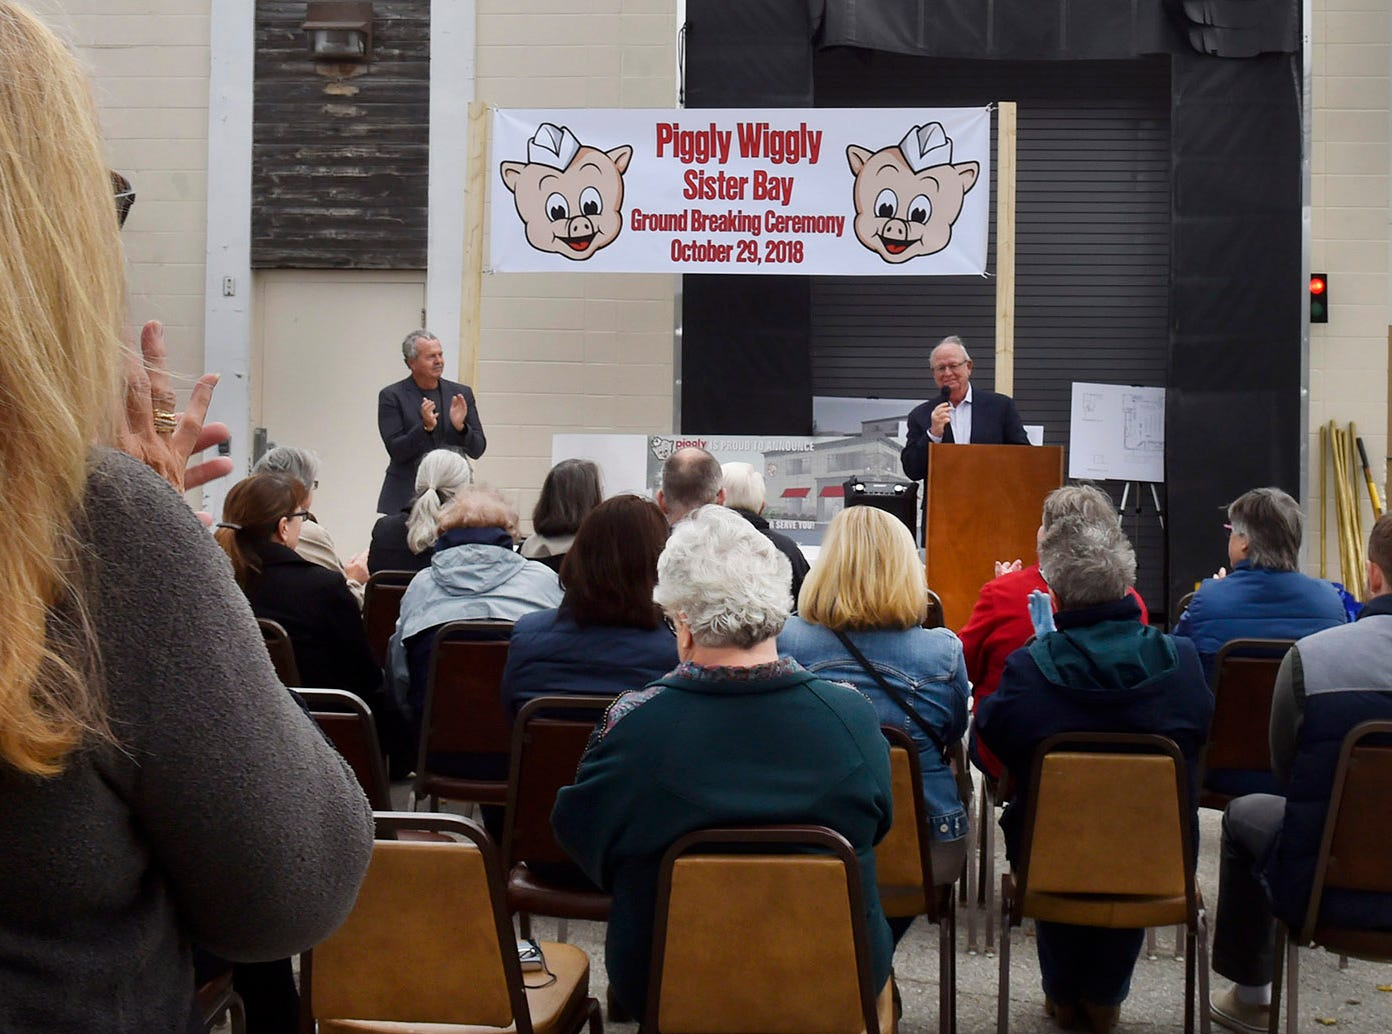 About 50 people attended the ground-breaking ceremony of the Piggly Wiggly Sister Bay expansion project on Oct. 29, 2018. At the podium is the store's president Tom Nesbitt and at left is vice president Dan Nesbitt. Tina M. Gohr/USA TODAY NETWORK-Wisconsin